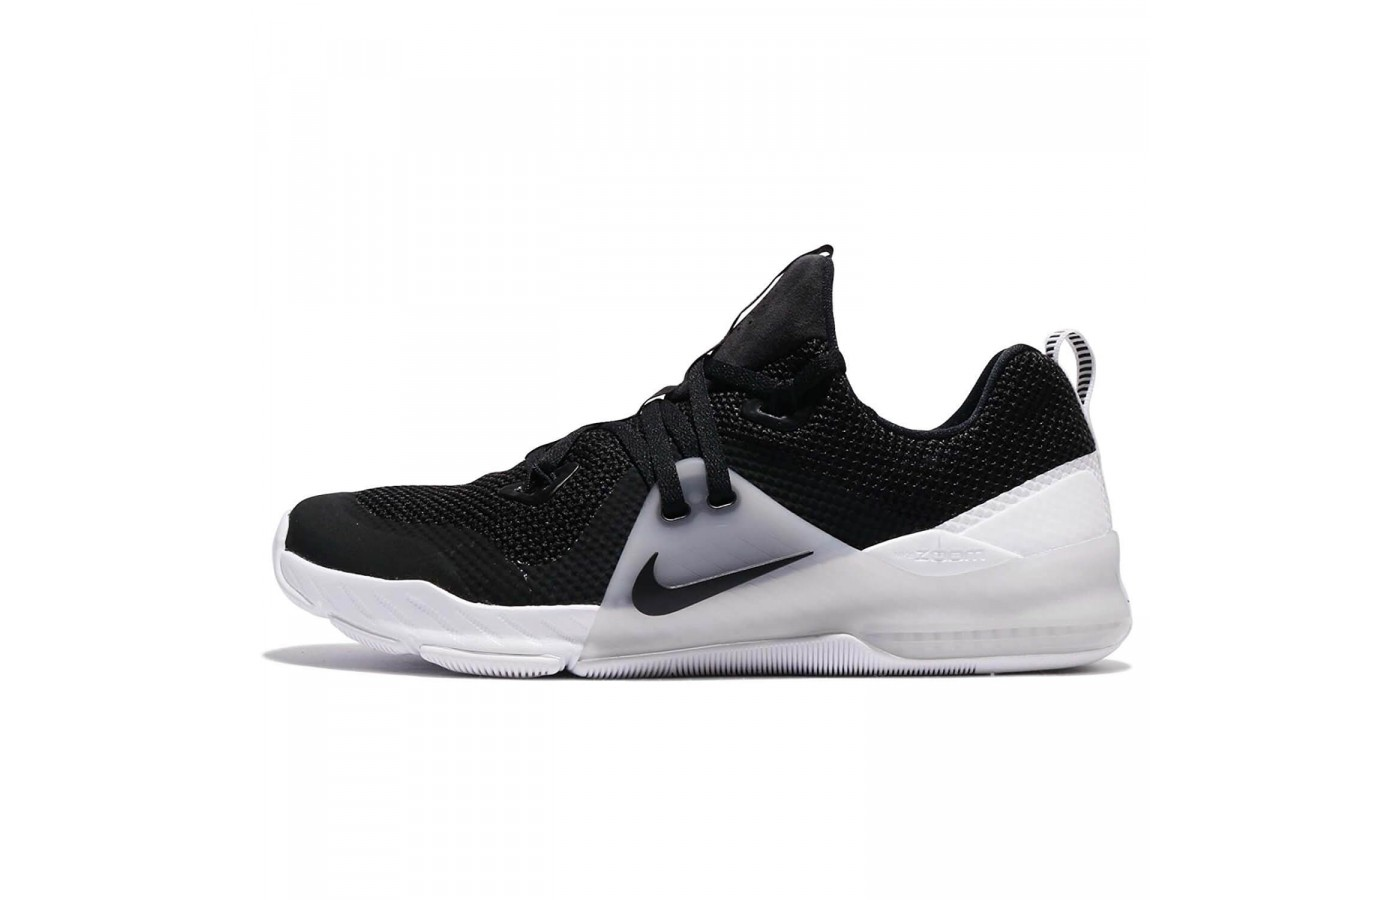 reputable site f467a 3102a Nike Zoom Train Command. Runners love the traditional Nike Zoom cushioning  in the midsole ...